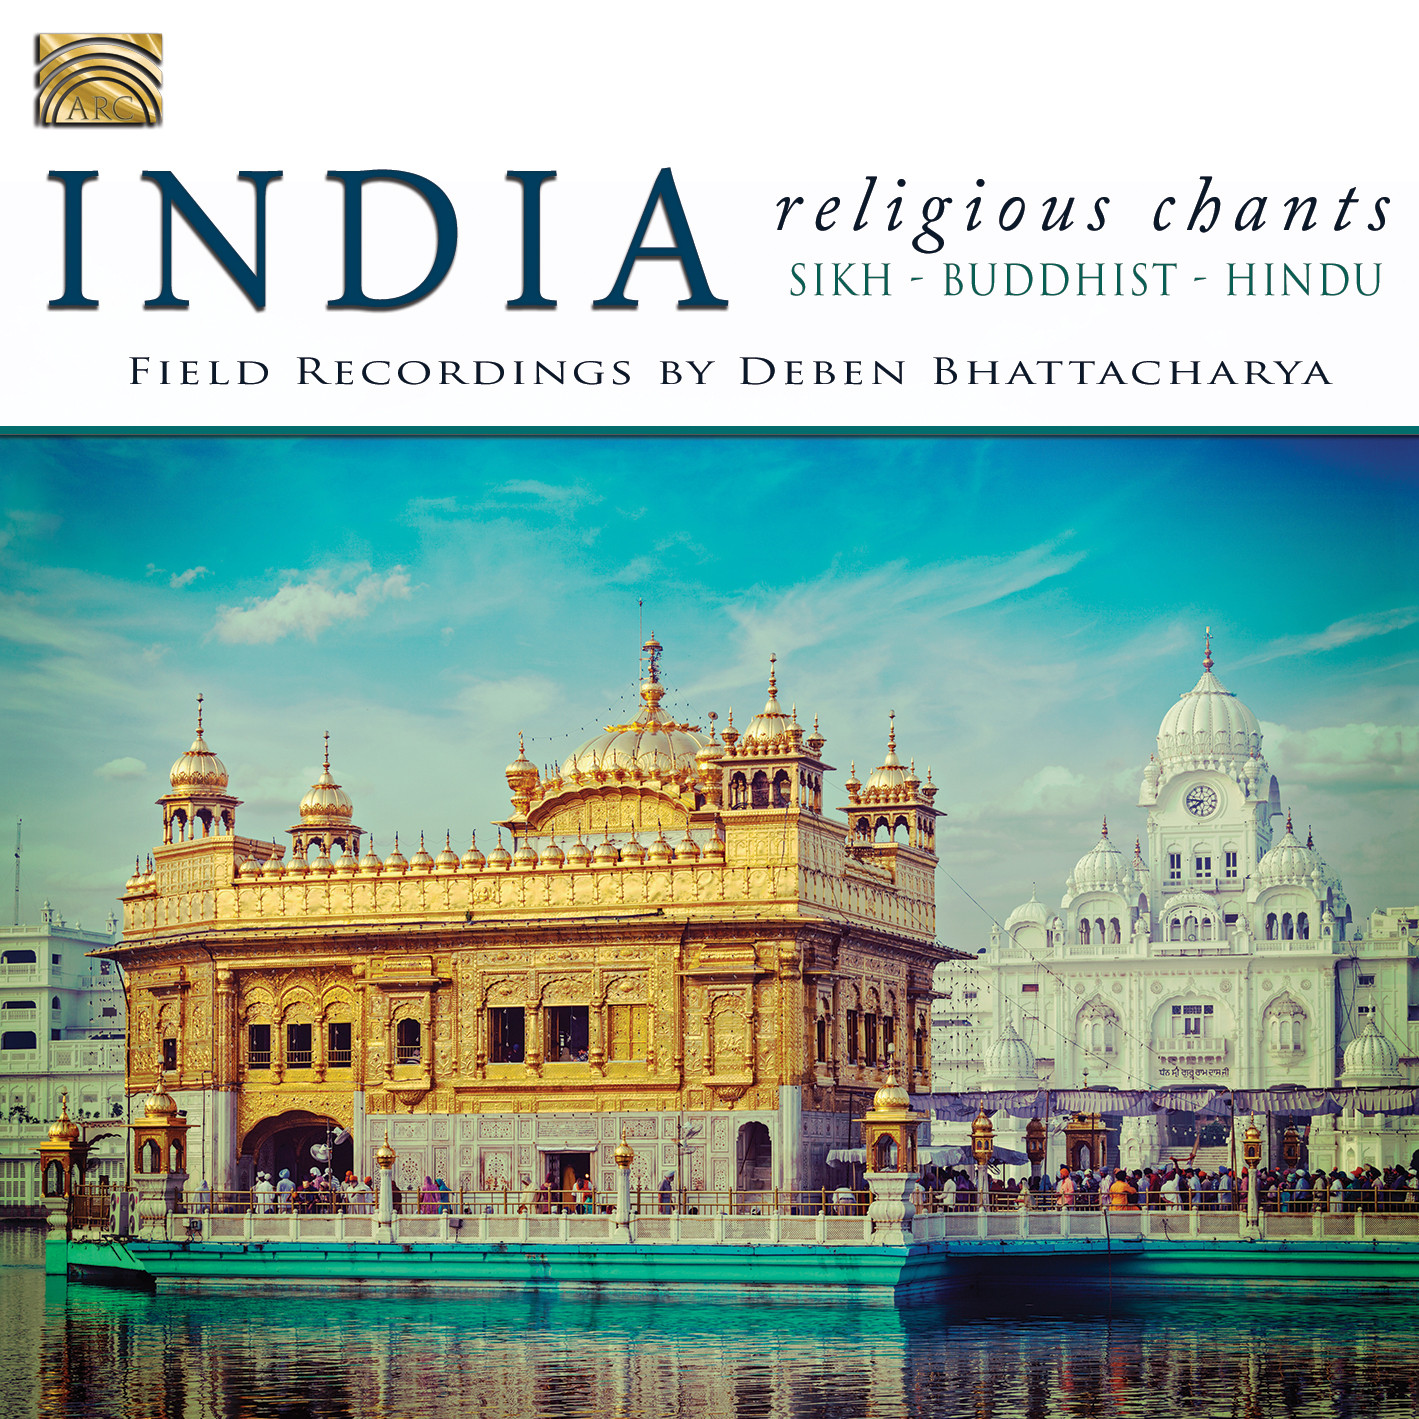 EUCD2579 India - Religious Chants - Buddhist, Hindu, Sikh - Field recordings by Deben Bhattacharya